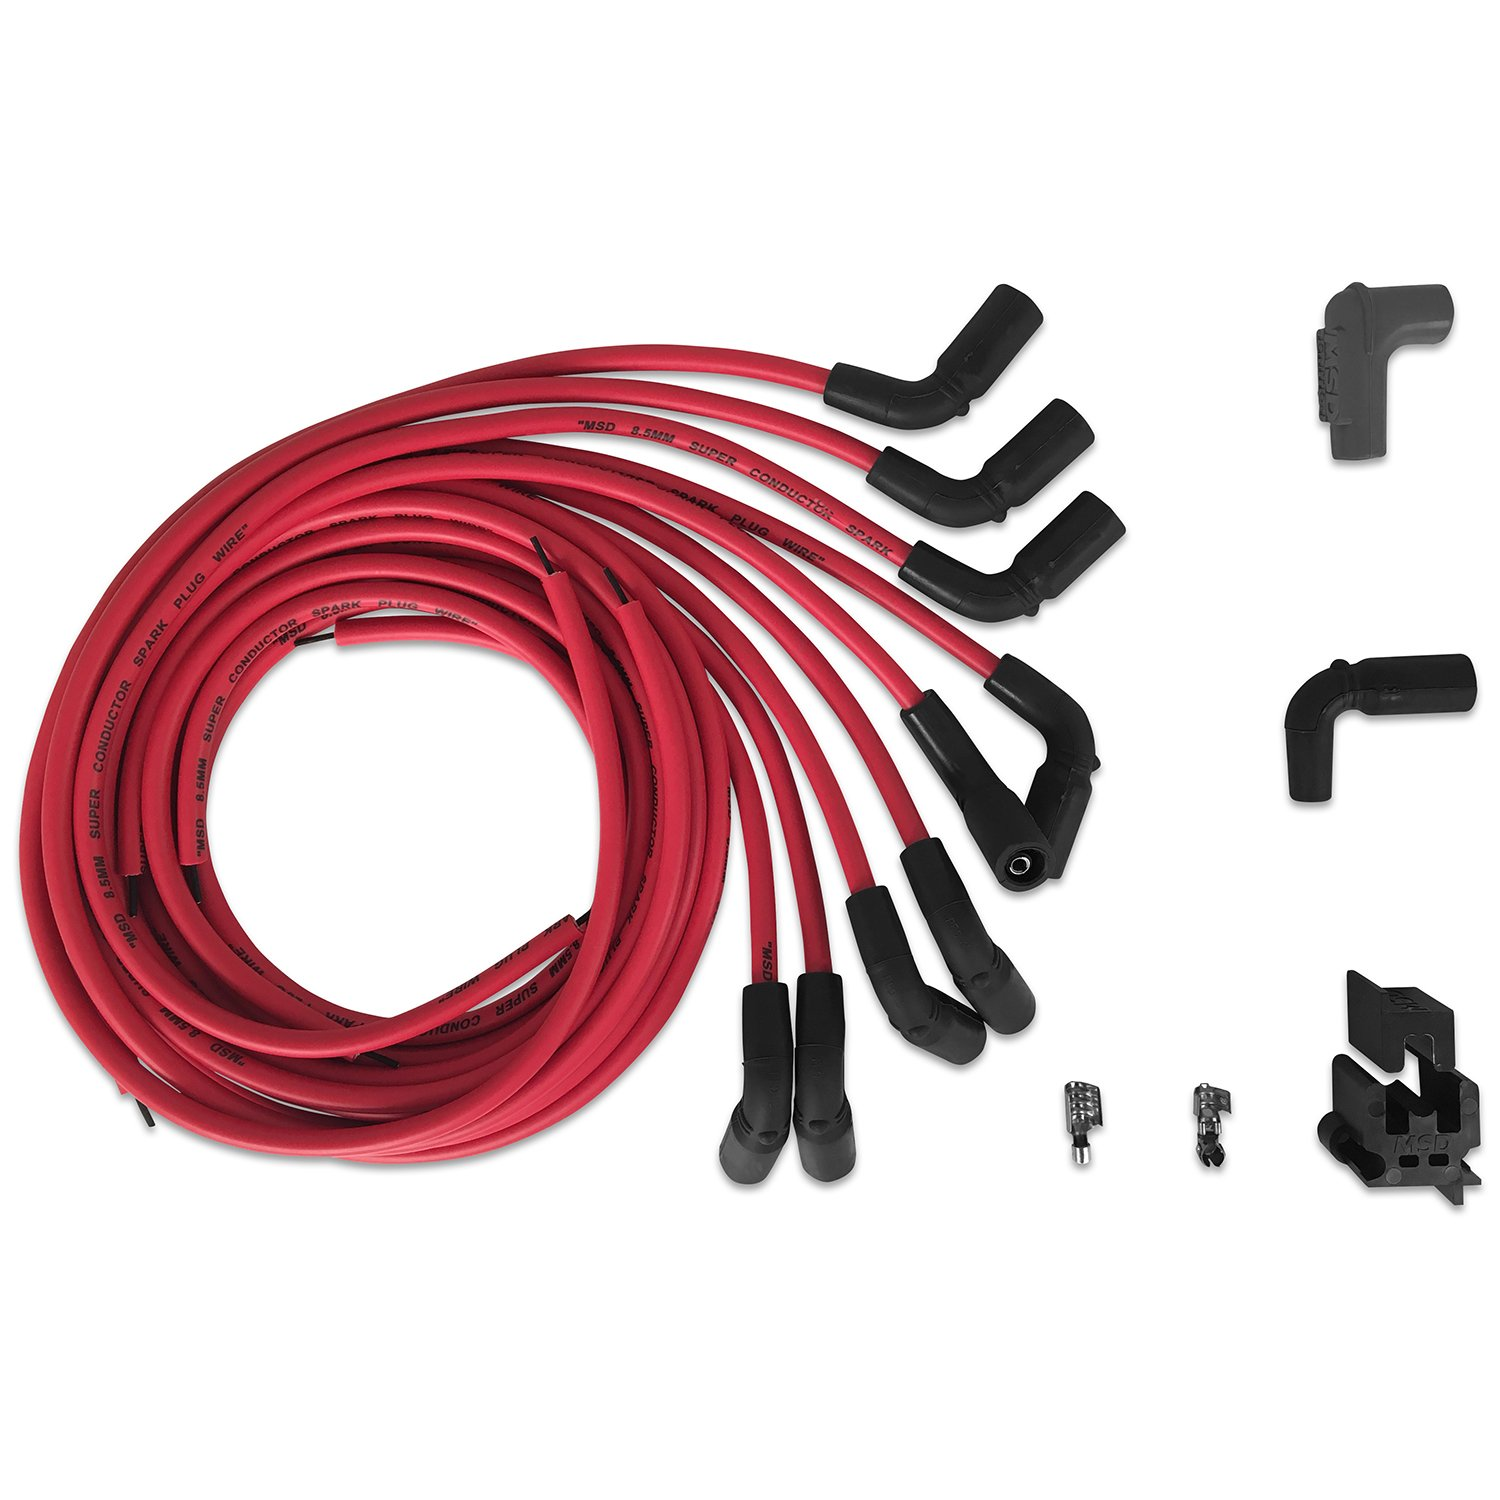 MSD 32139 Super Conductor Spark Plug Wire Set, Universal Chevy, LT1 on universal brake light switch, universal trailer hitch, universal headlight switch, universal fuel pump, universal air filter,